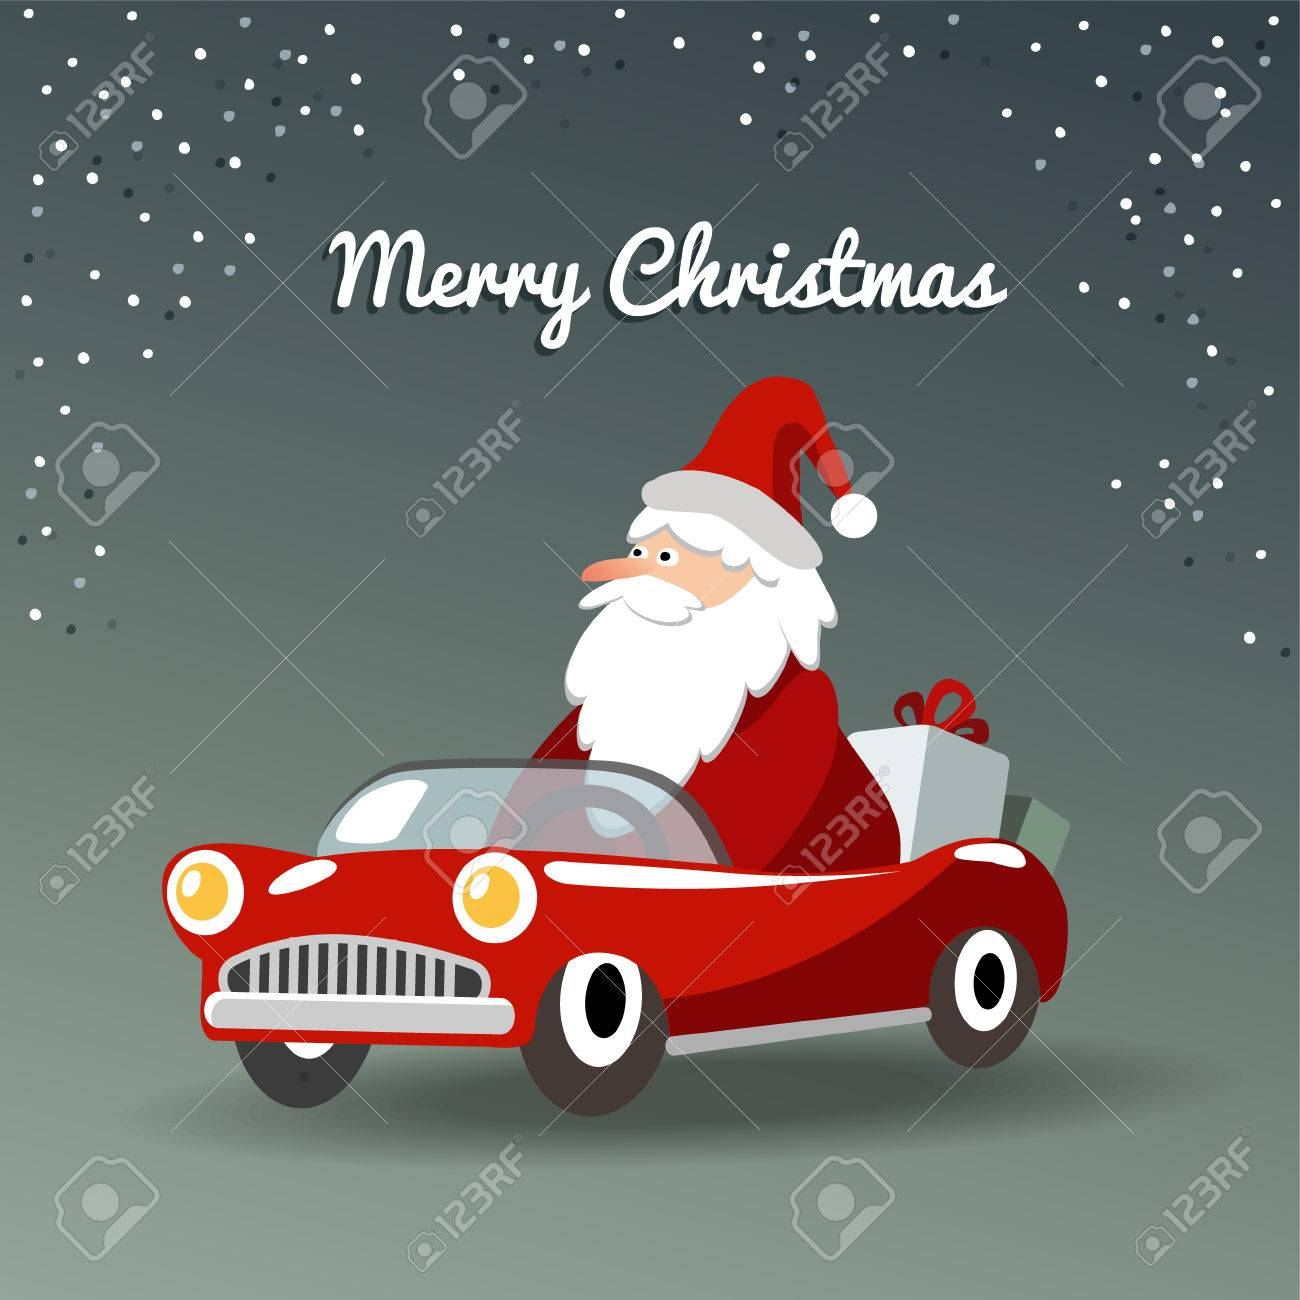 Christmas Sports Background.Cute Christmas Greeting Card With Santa Claus Retro Sports Car